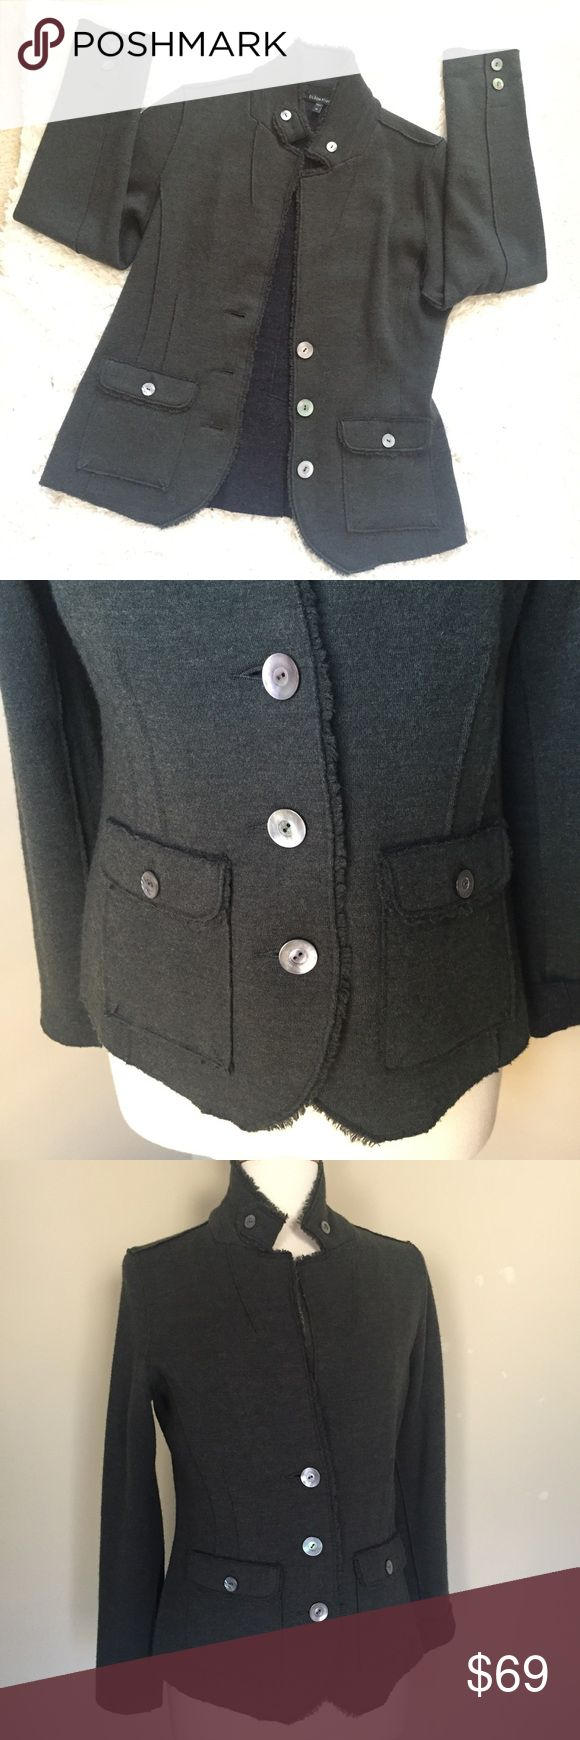 Eileen Fisher Wool Hunter Green Military Jacket Condition: never worn - new without tags; No pilling, rips, stains or holes; Pet and Smoke Free Home!! Please see ALL pictures for details and measurements. Eileen Fisher Jackets & Coats